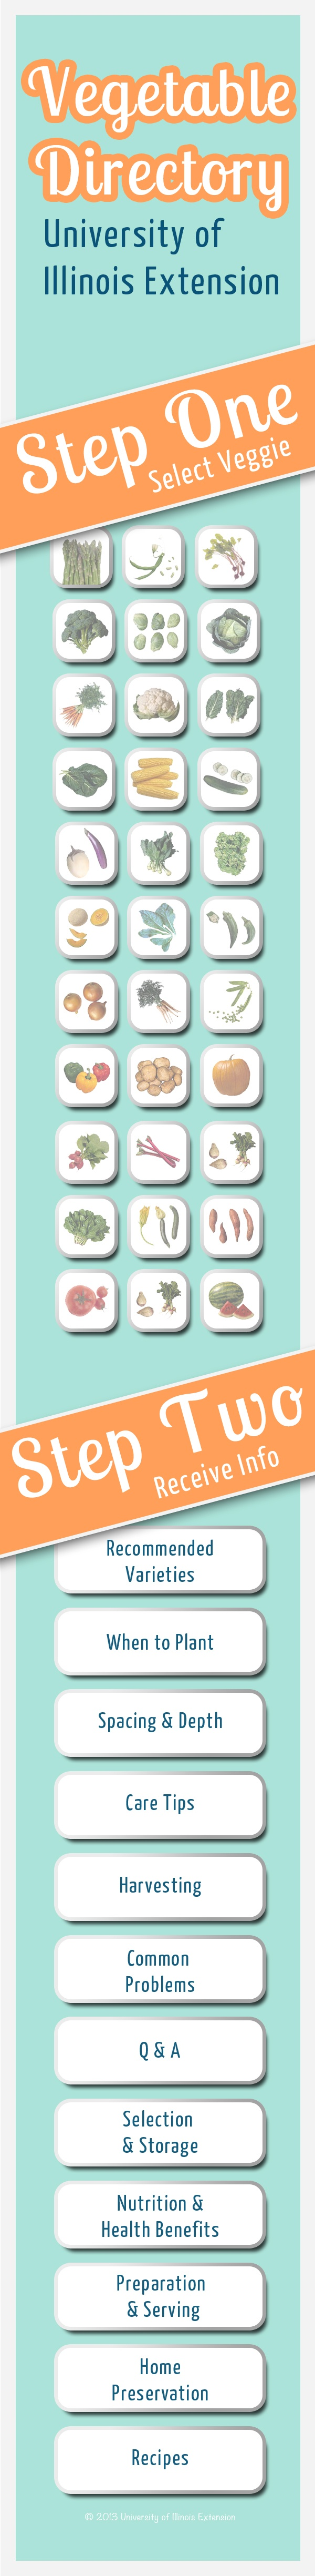 Pin Now For Gardening Season! An Excellent Veggie Gardening Resource From  University Of Illinois Extension